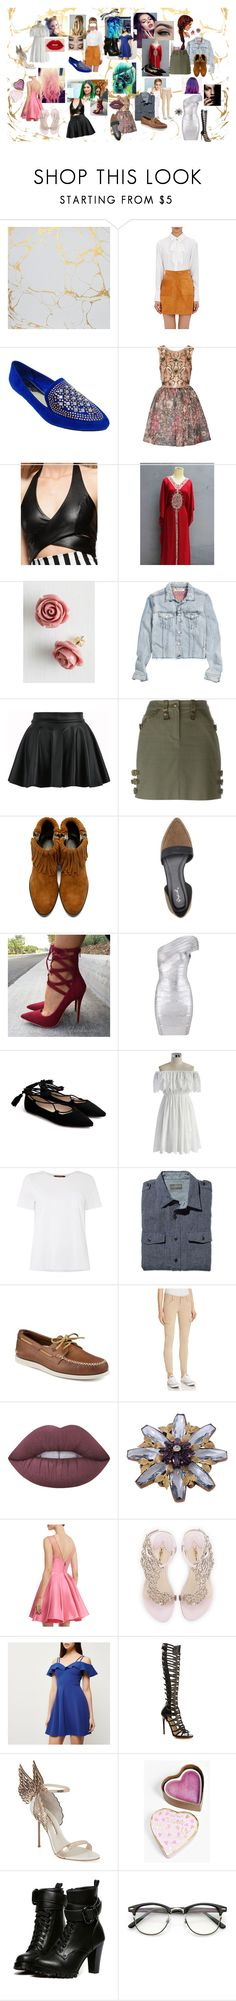 """Modern Sailor Scouts"" by breann-passey on Polyvore featuring Frame Denim, DbDk, Notte by Marchesa, Retrò, Pixie, H&M, Christian Dior, 3.1 Phillip Lim, Qupid and Chicwish"